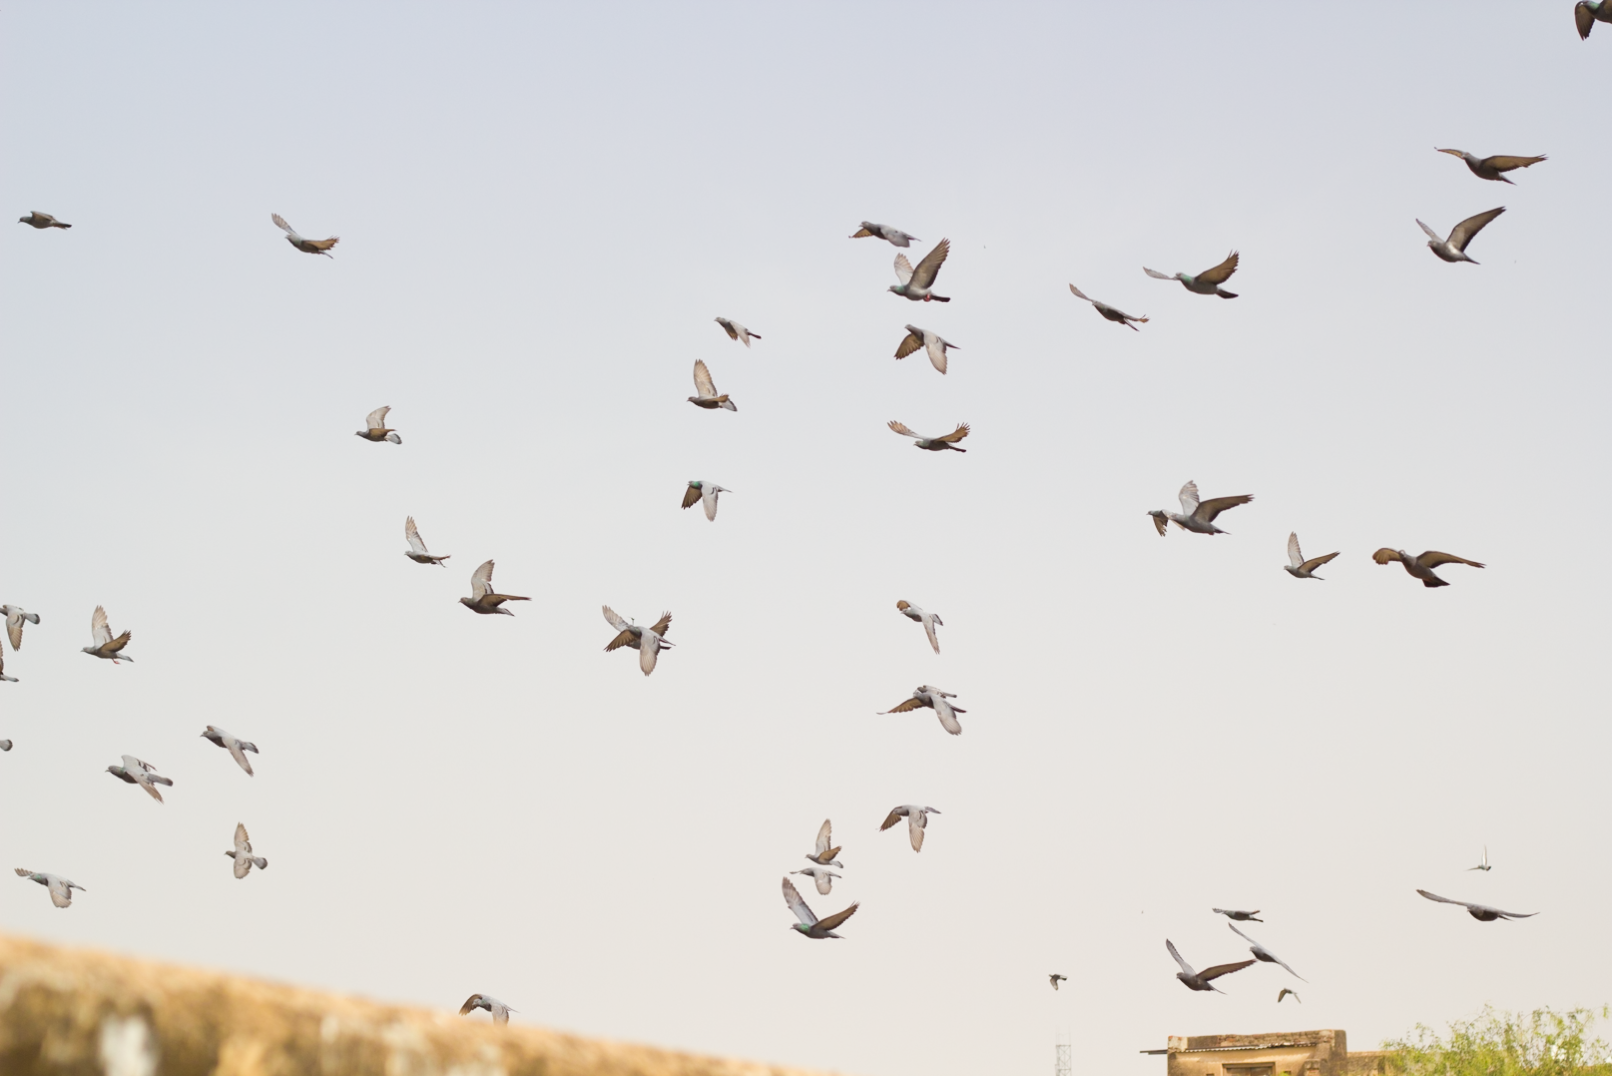 Photo Diaries | Birds In The Air